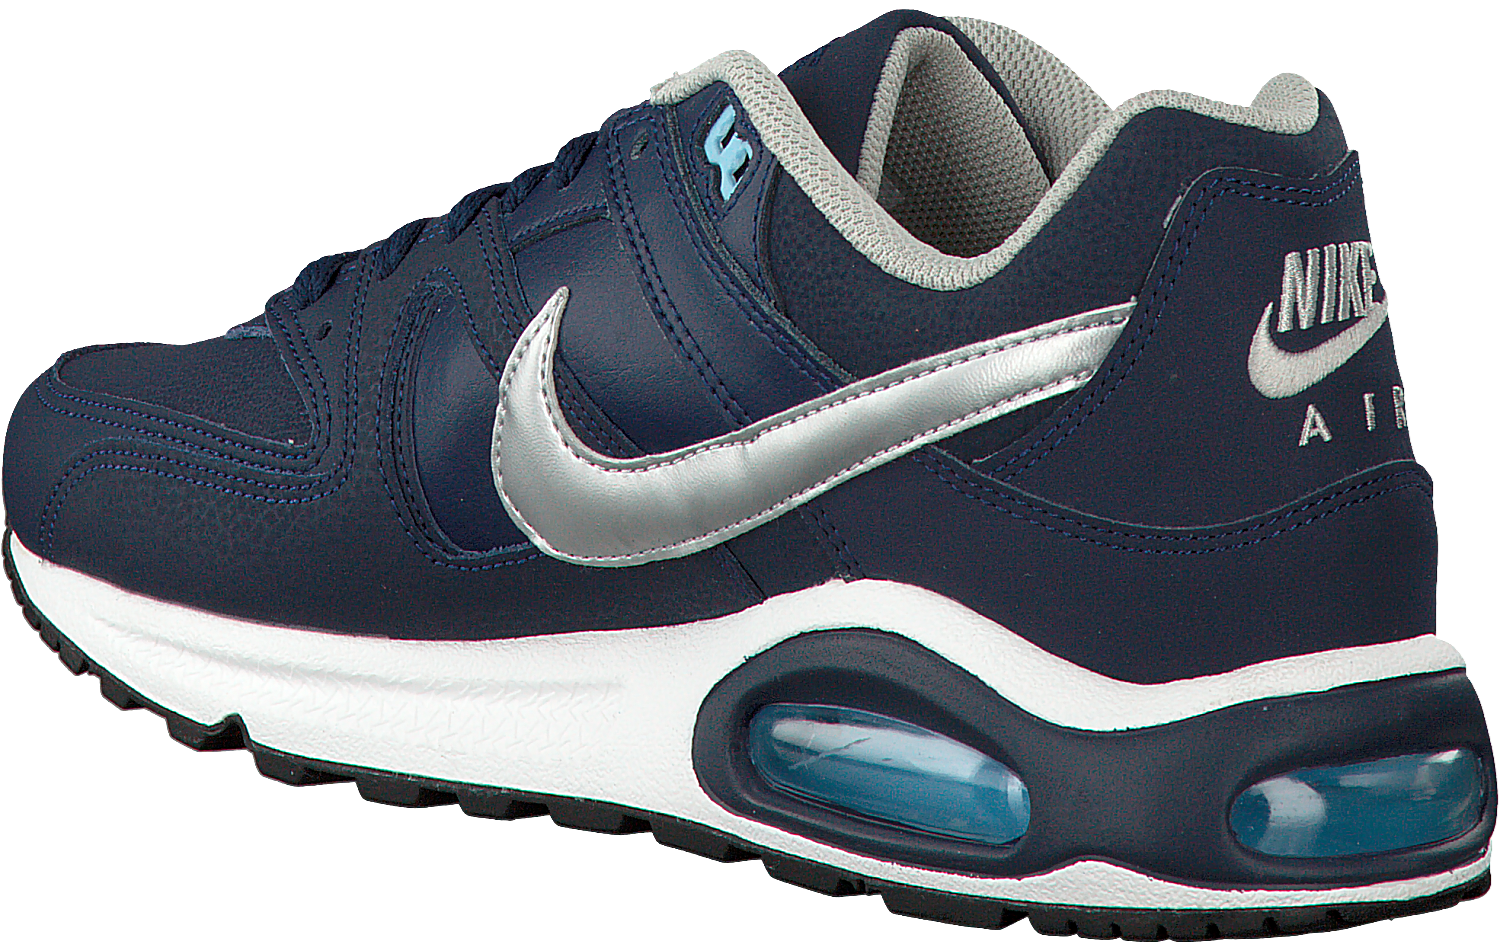 Grijze NIKE Sneakers AIR MAX COMMAND LEATHER Omoda.nl